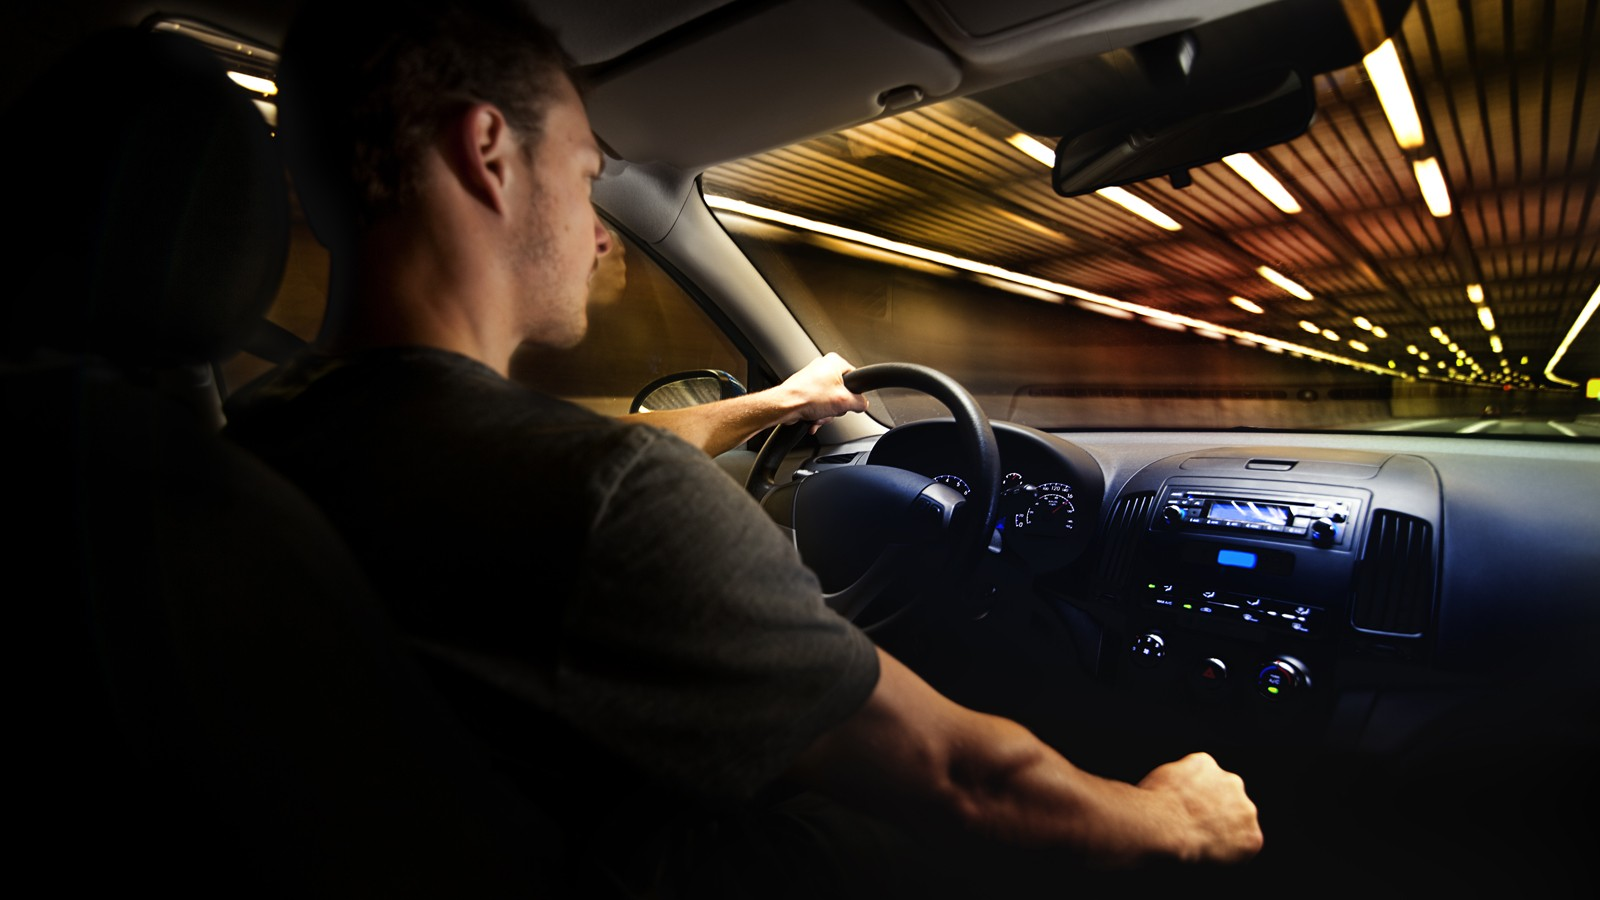 Young Adult Driving Over the Speed Limit in a Tunnel.